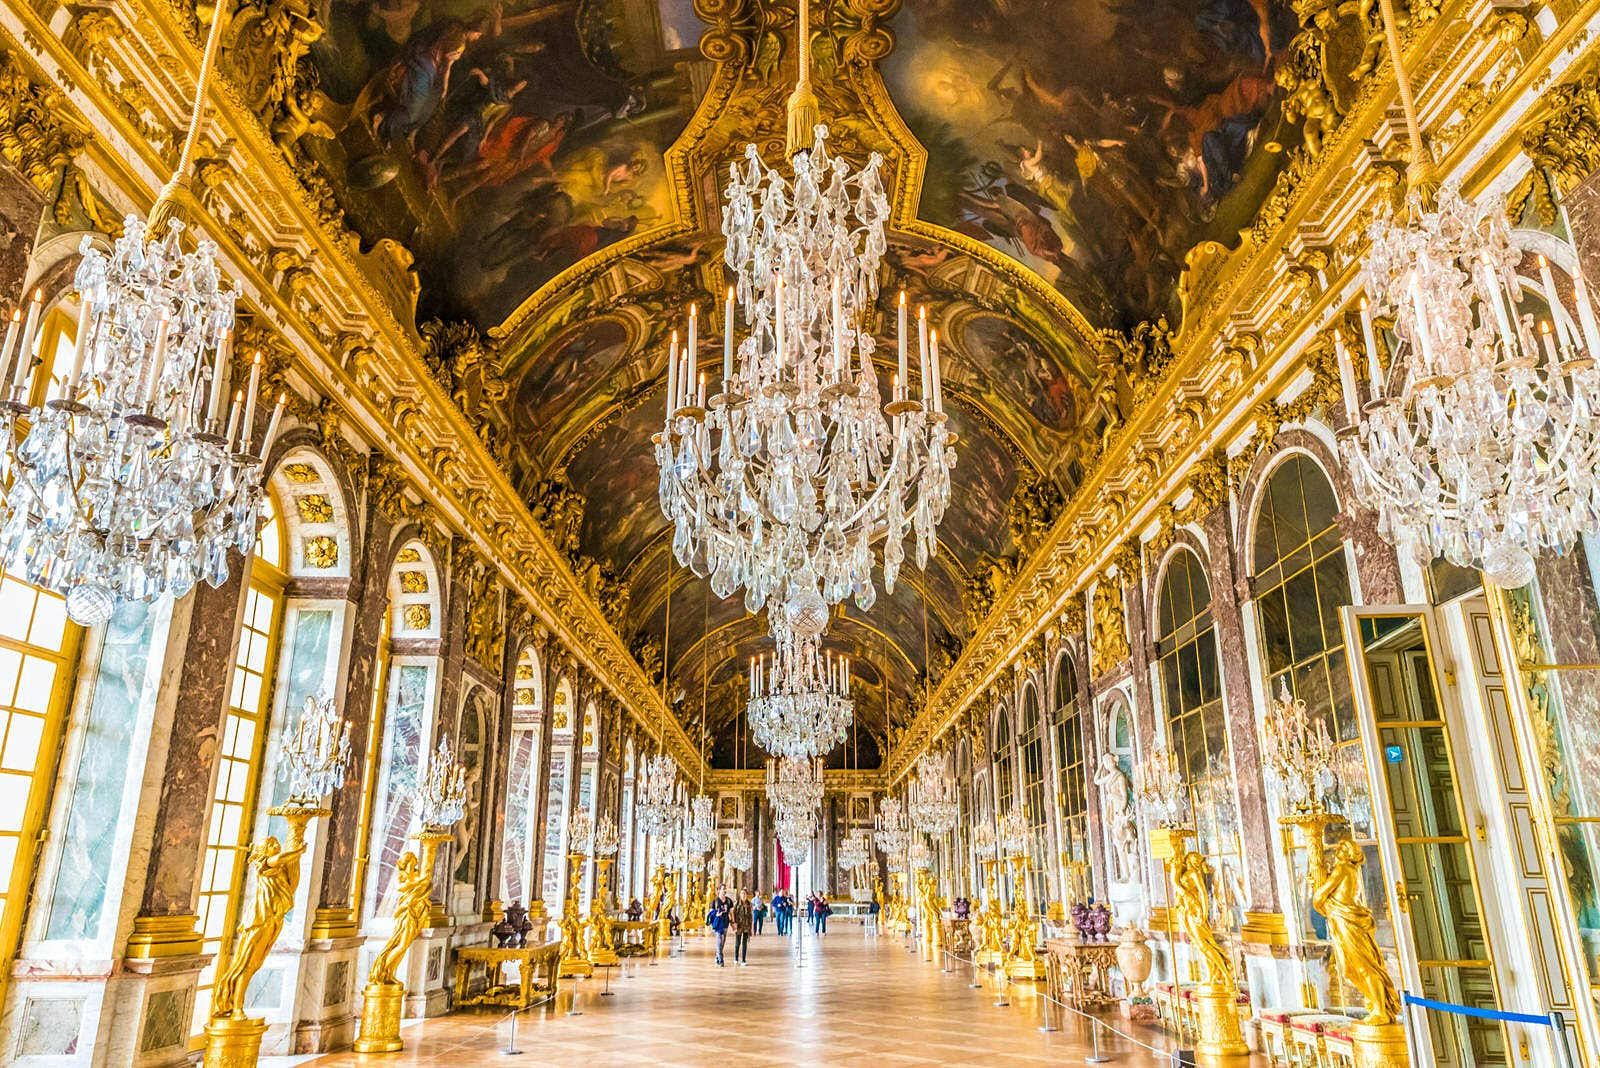 Interior of the Château de Versailles: an extremely grand corridor with gold statues, huge windows and ornate, crystal chandeliers